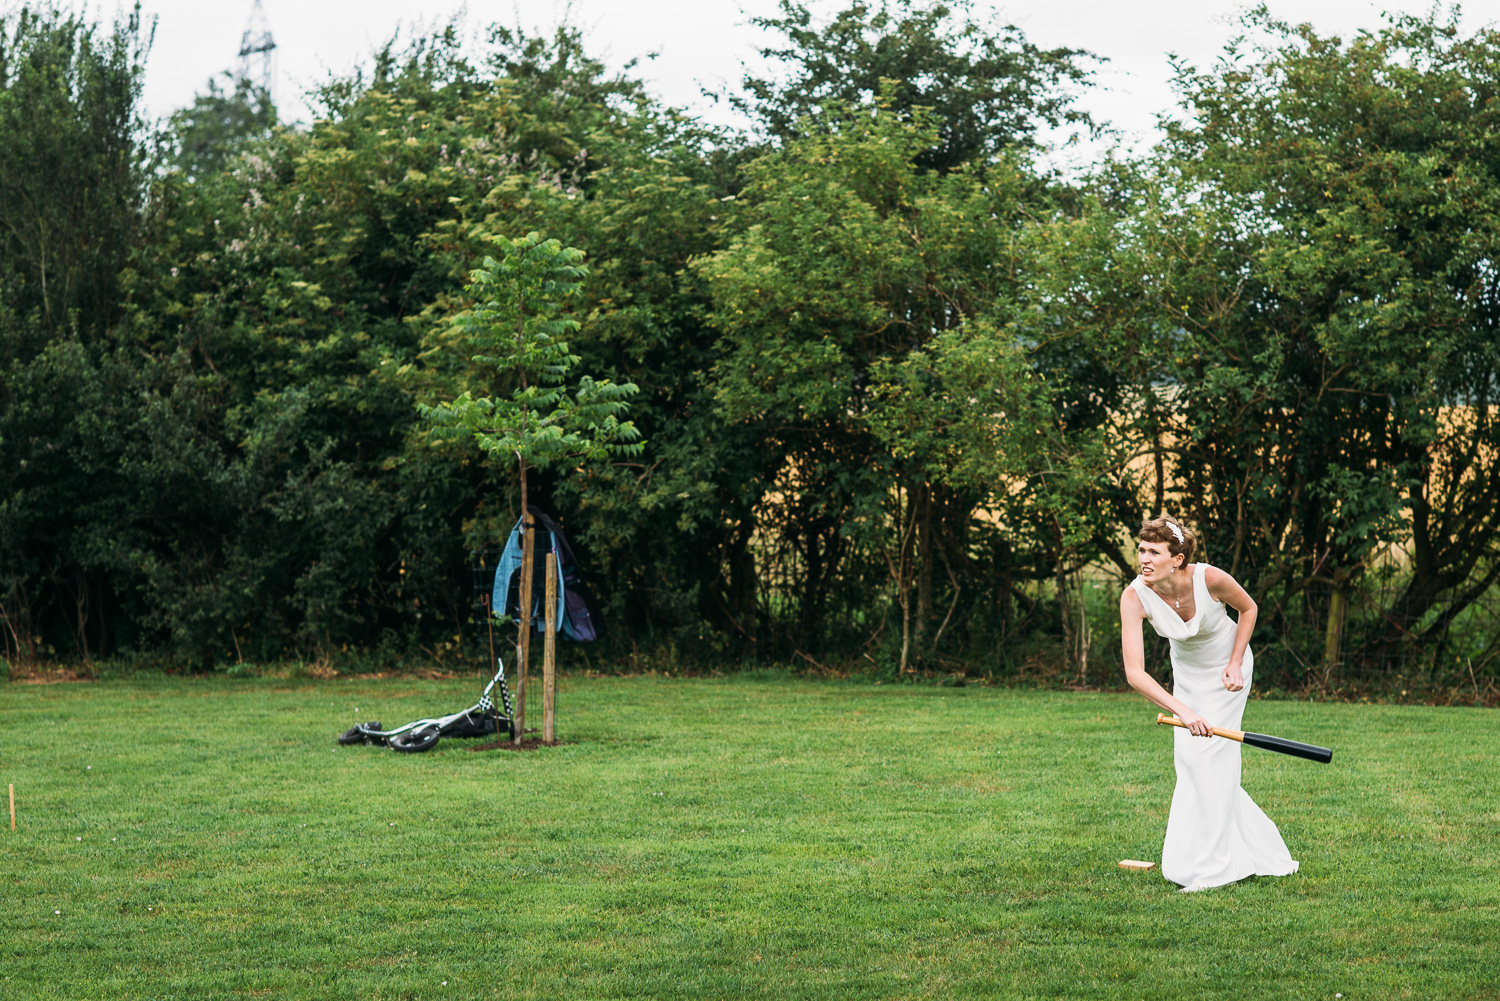 back-garden-wedding-92.jpg